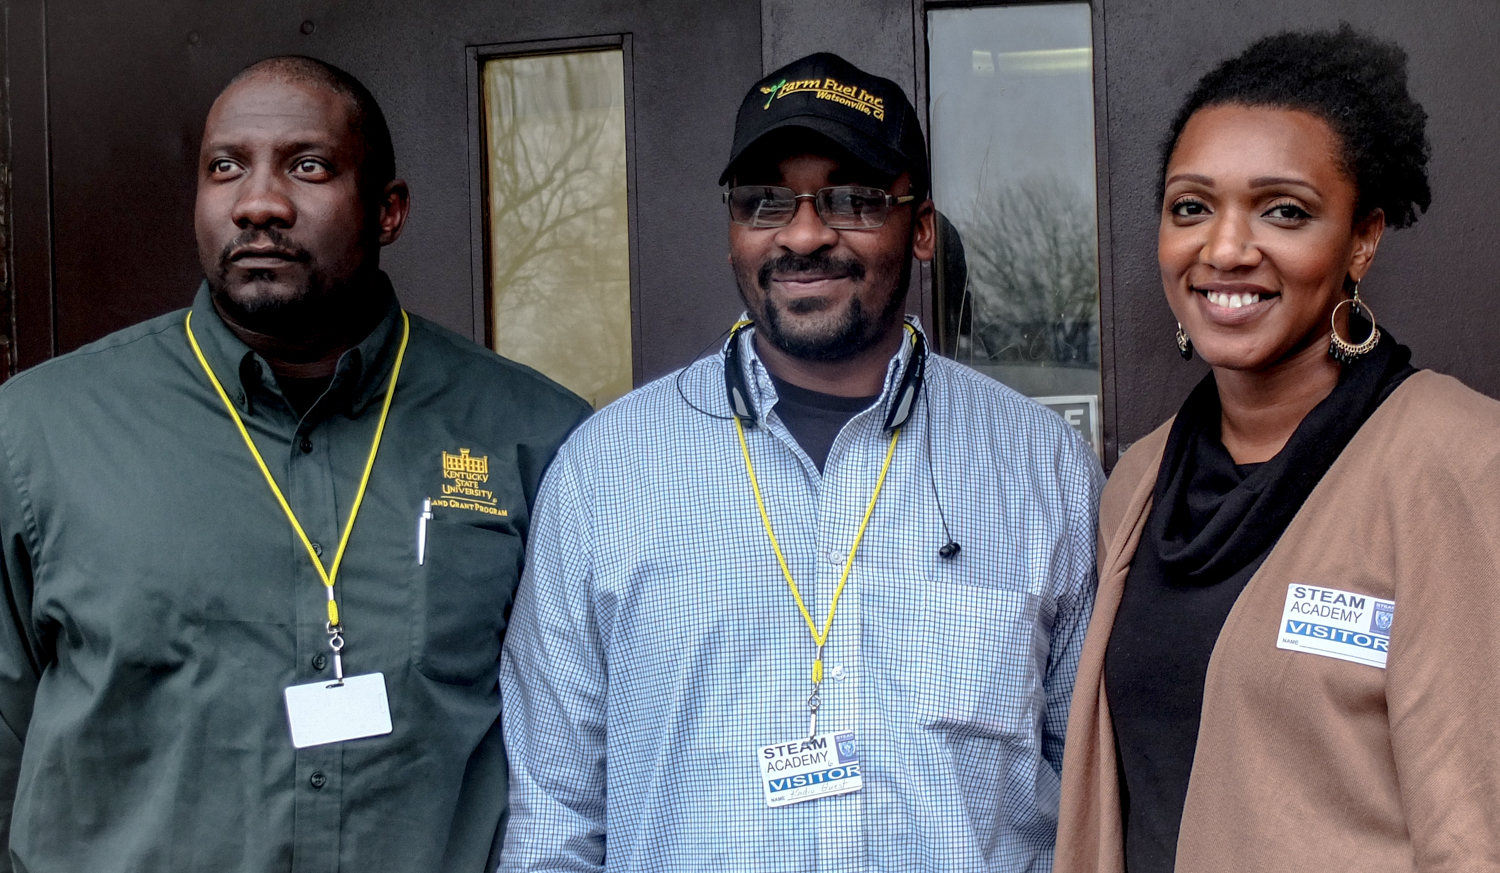 From left: Teheran Jewell, André Barbour, Shanika Chappell